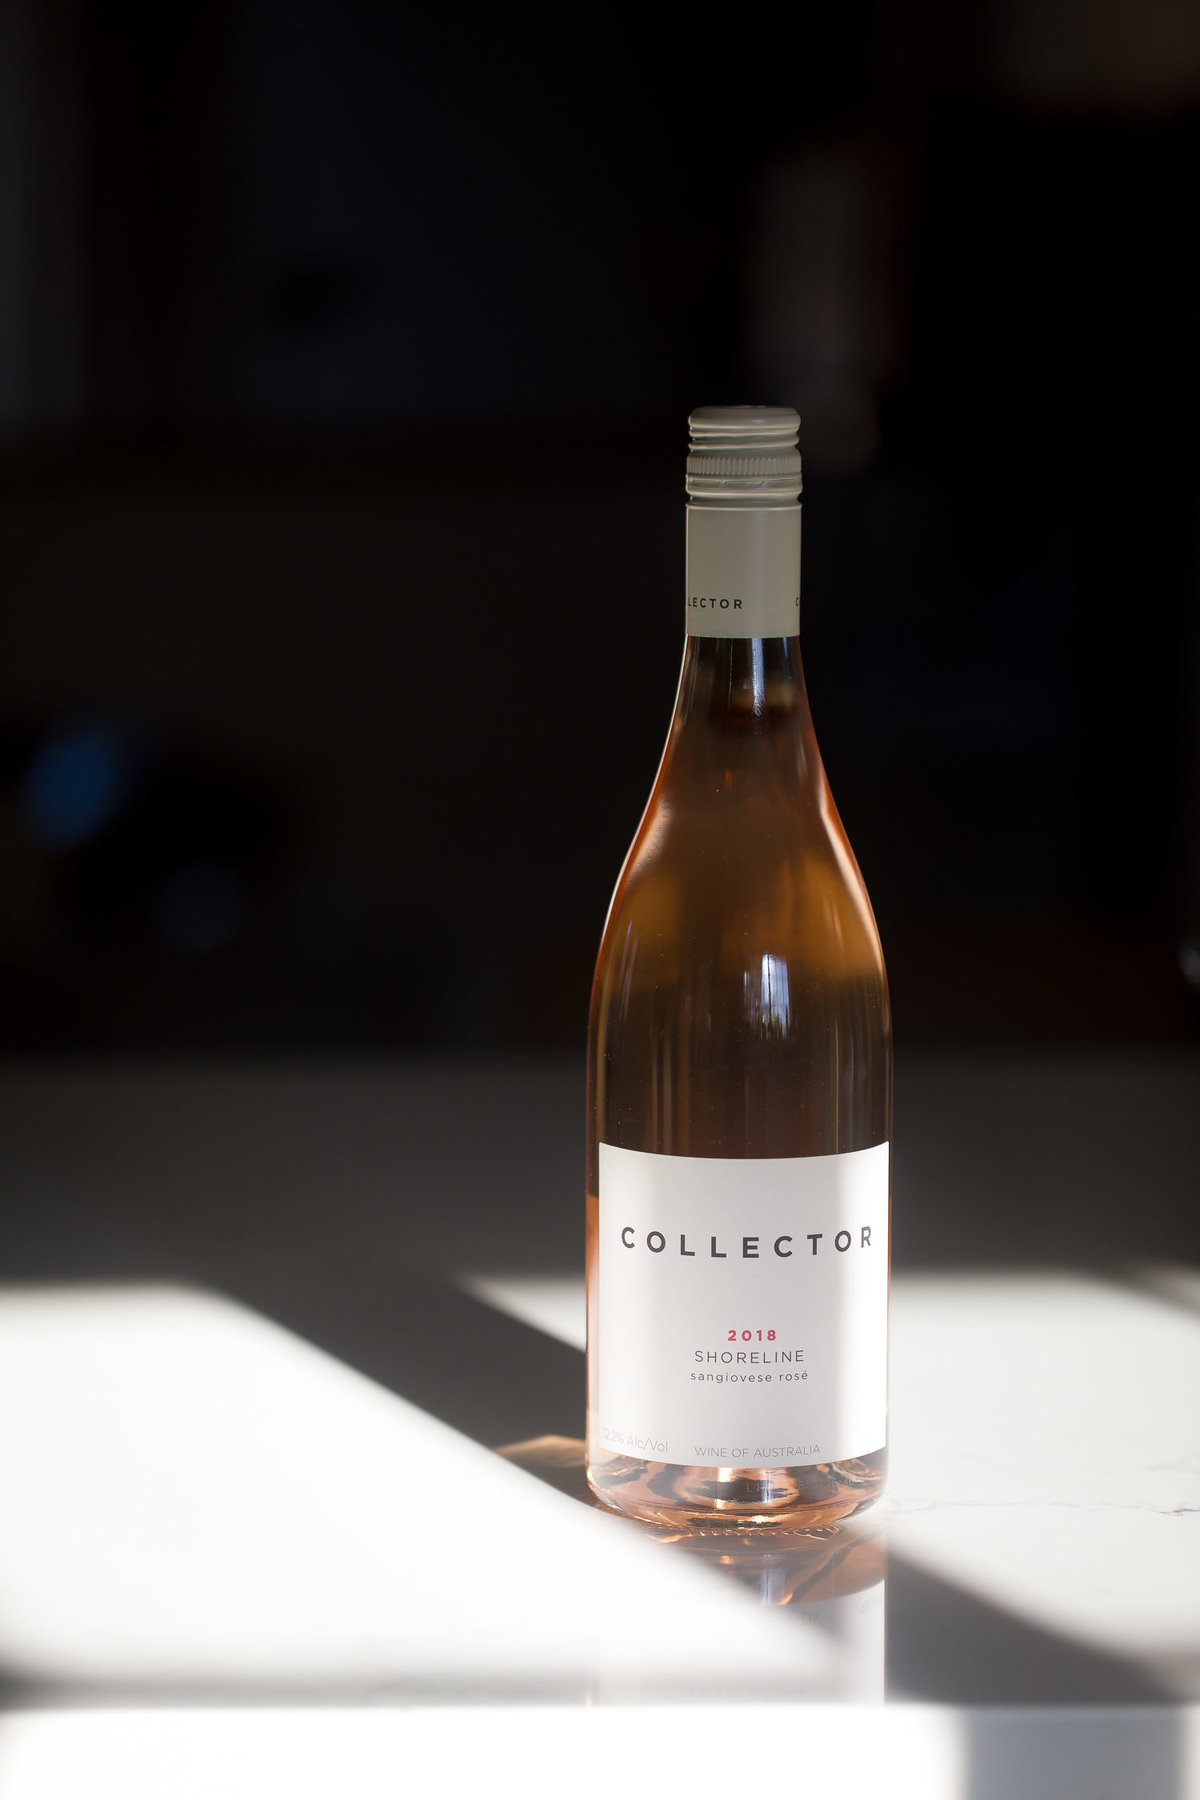 Collector - Product Wine Shots - Anisa Sabet - Photographer-29